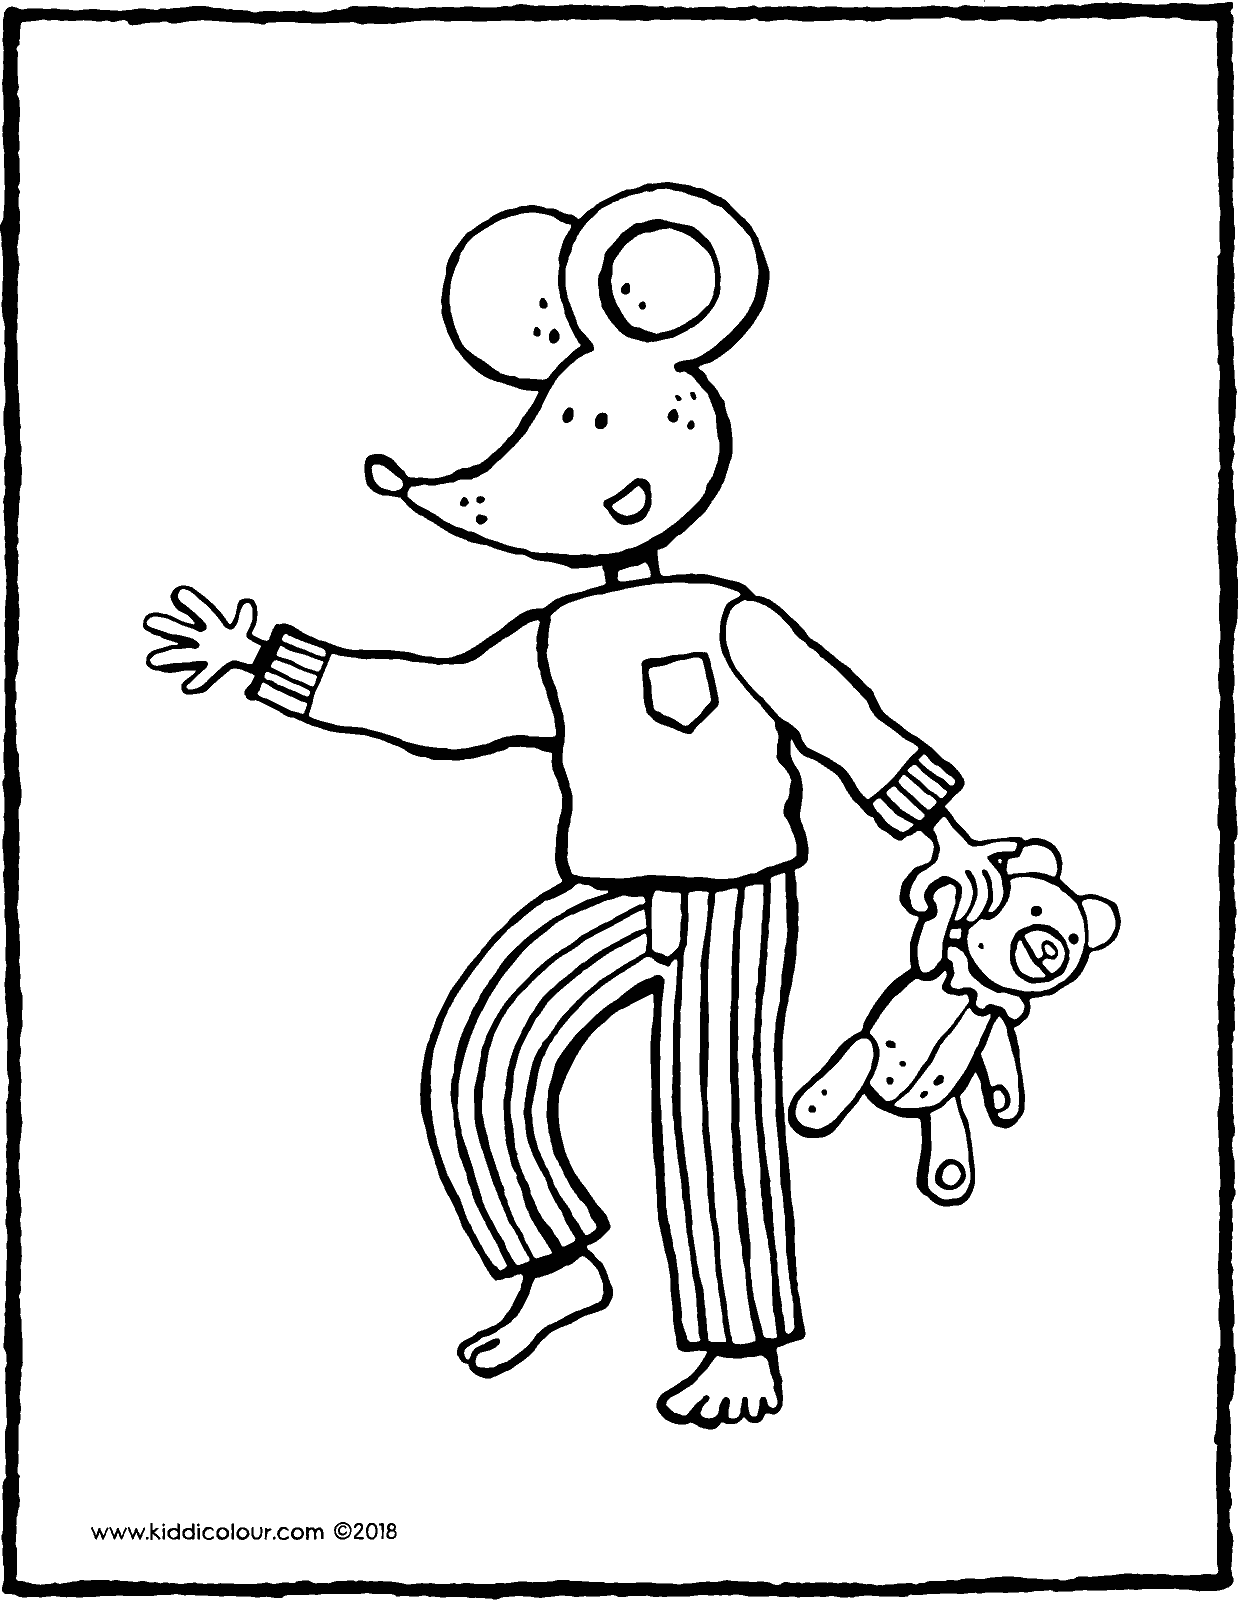 Thomas wearing pyjamas and a teddybear colouring page drawing picture 01V